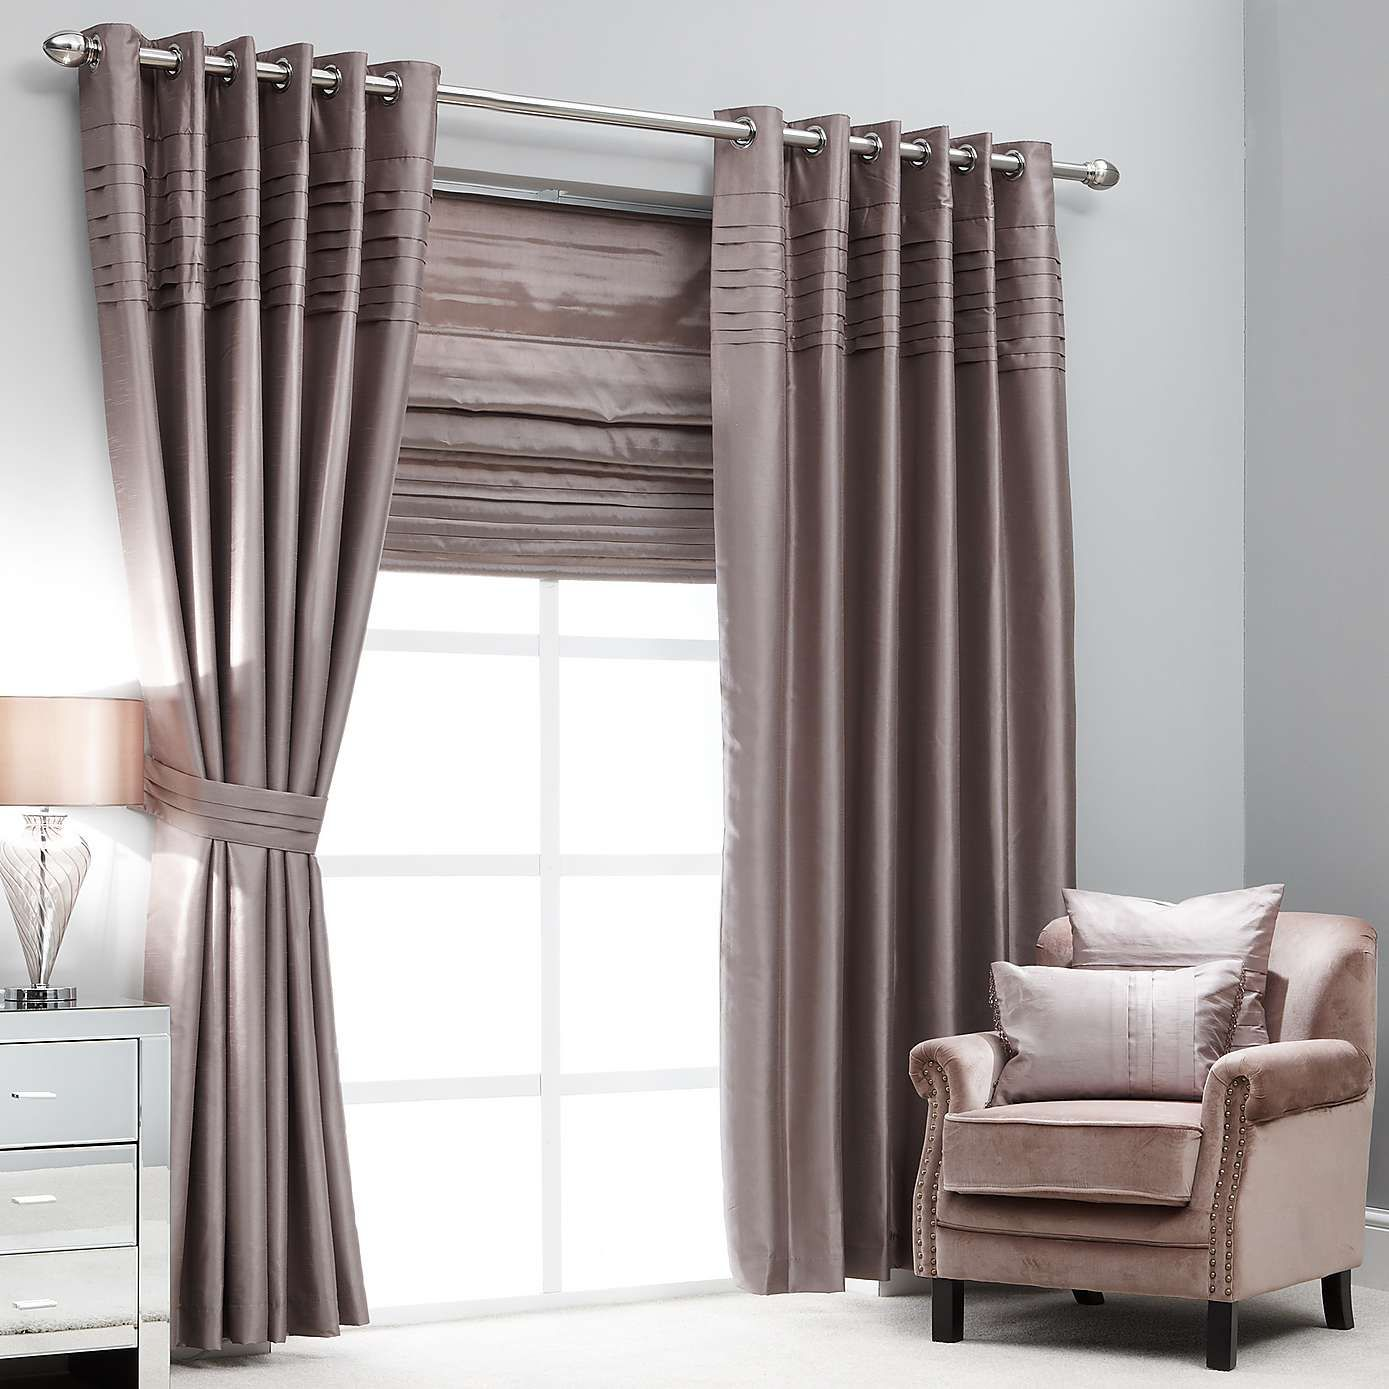 Hotel Mink Pintuck Lined Eyelet Curtains Dunelm